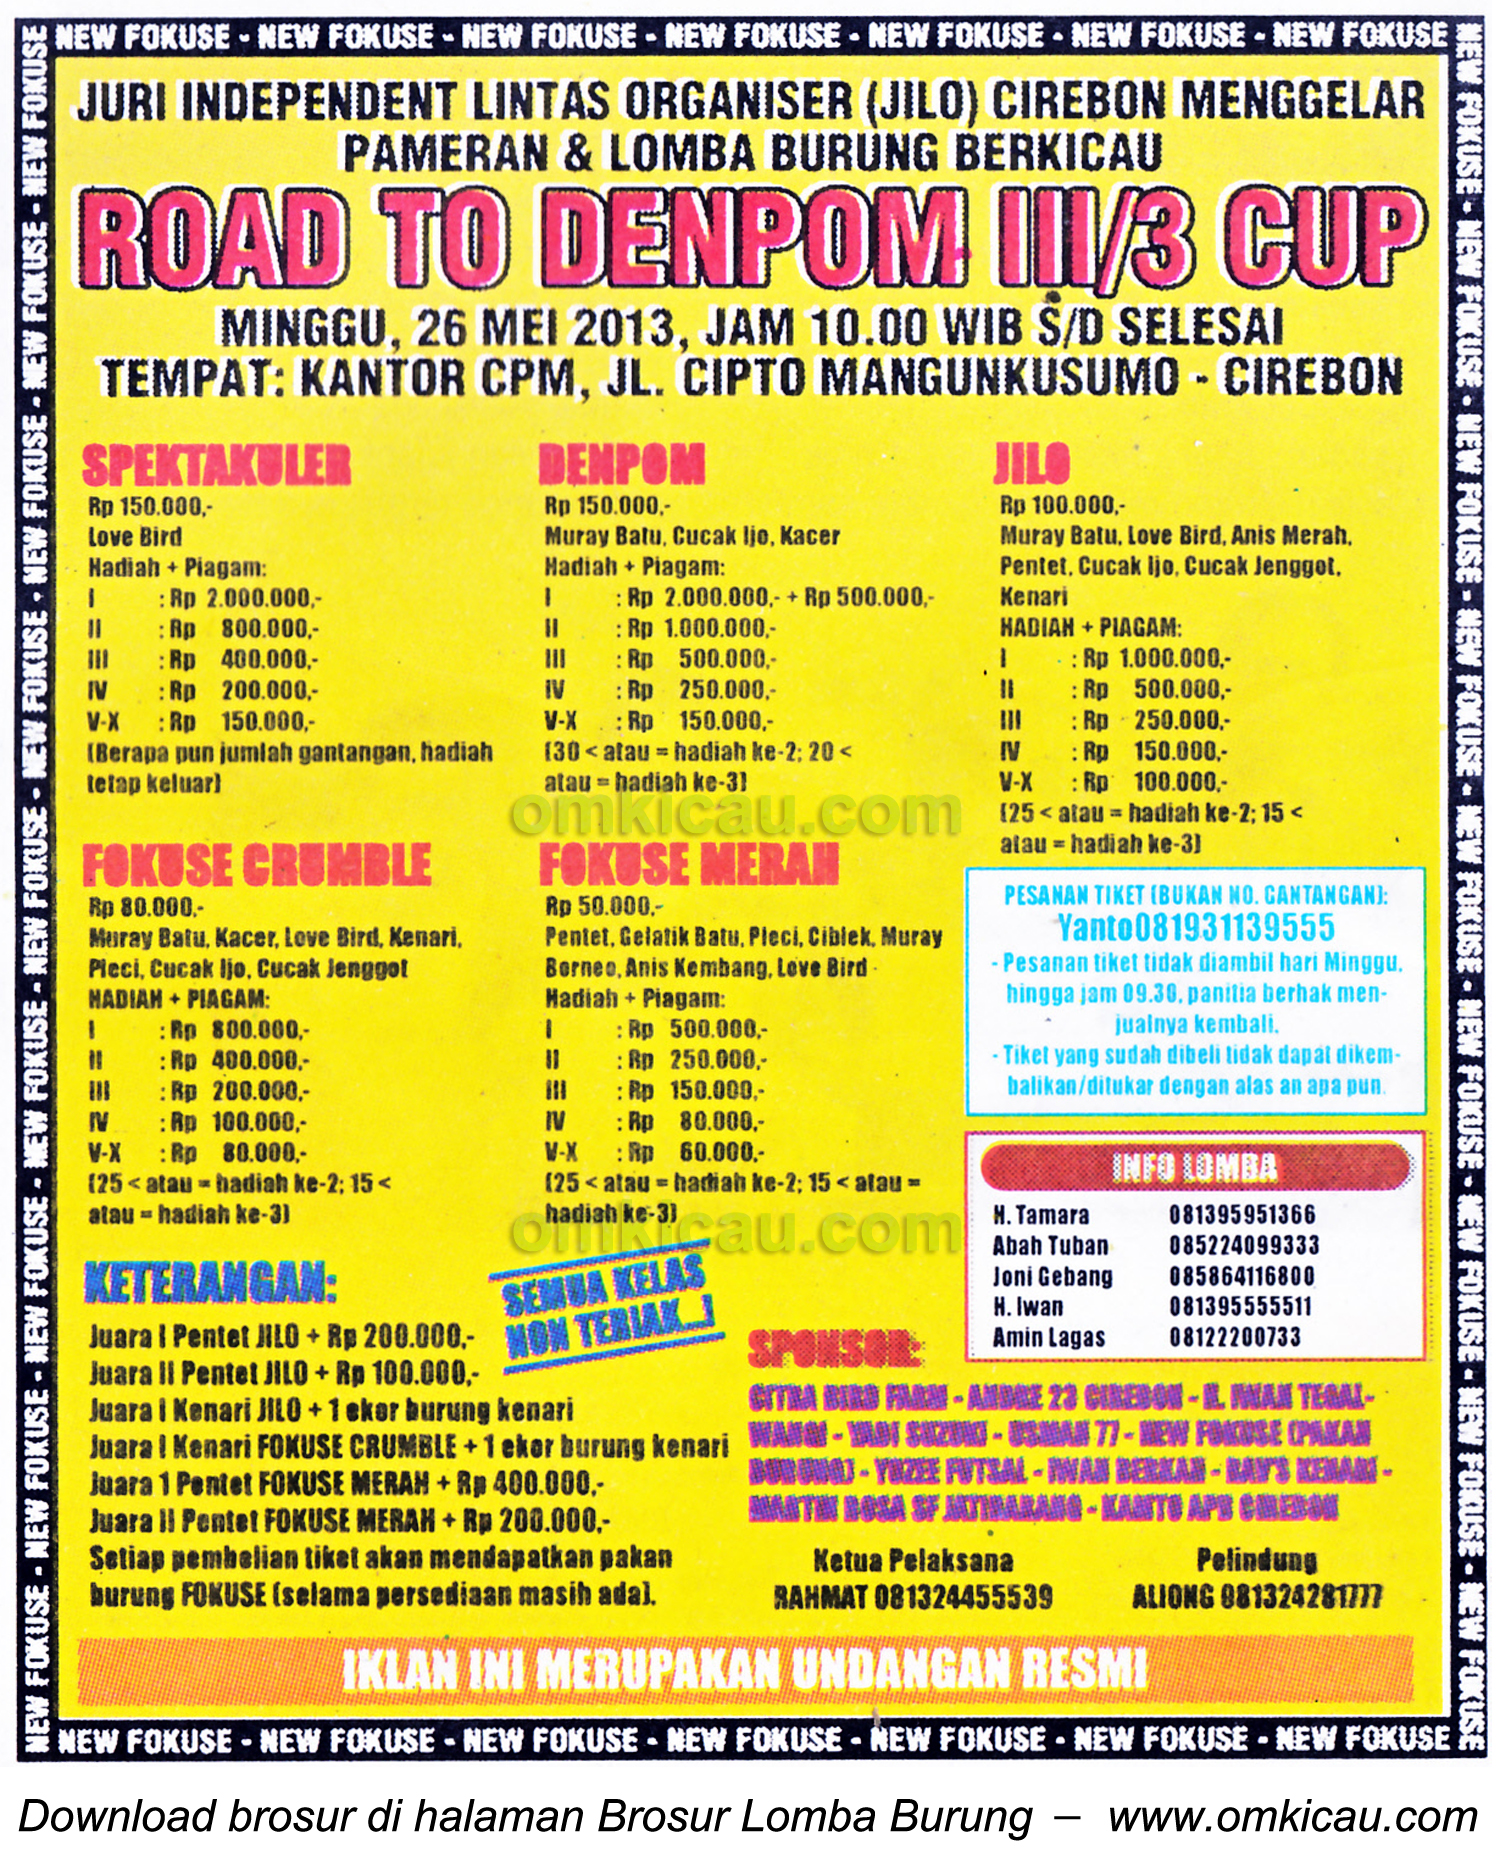 Brosur Lomba Burung Road to Denpom III Cup